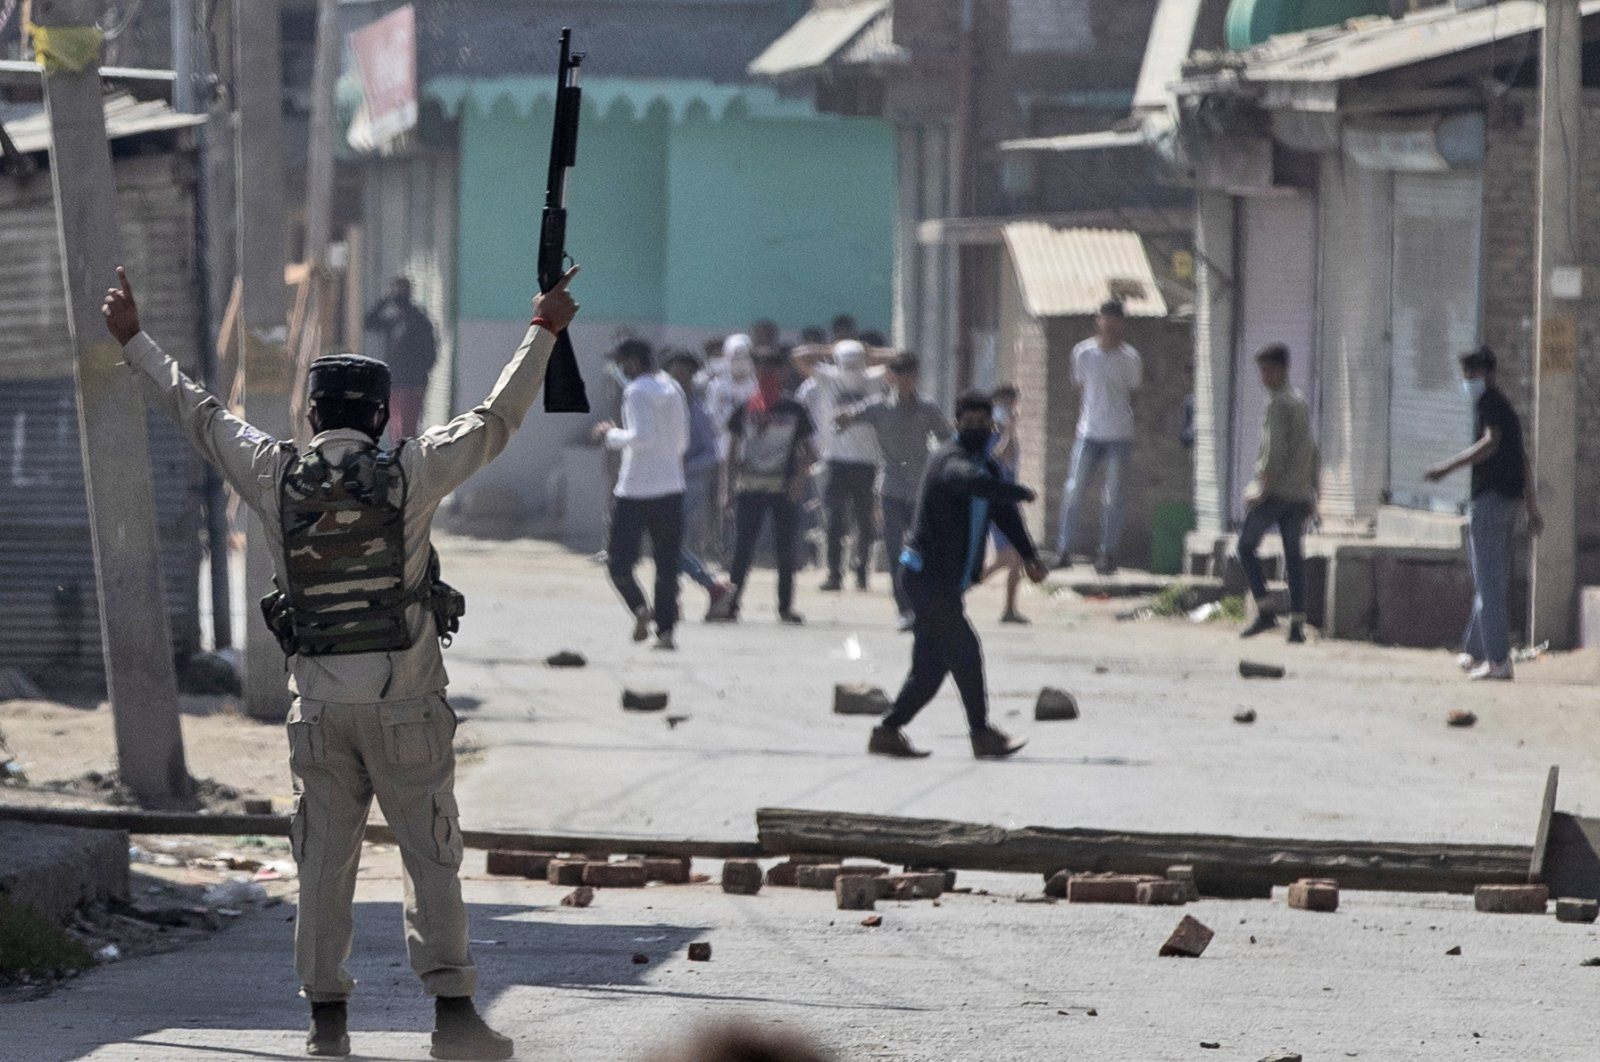 An Indian paramilitary soldier holds up a pellet gun as he challenges Kashmiri protesters marching on the streets in solidarity with rebels engaged in a gunbattle with soldiers, in Srinagar, Indian-controlled Kashmir, Sept. 17, 2020. (AP Photo)